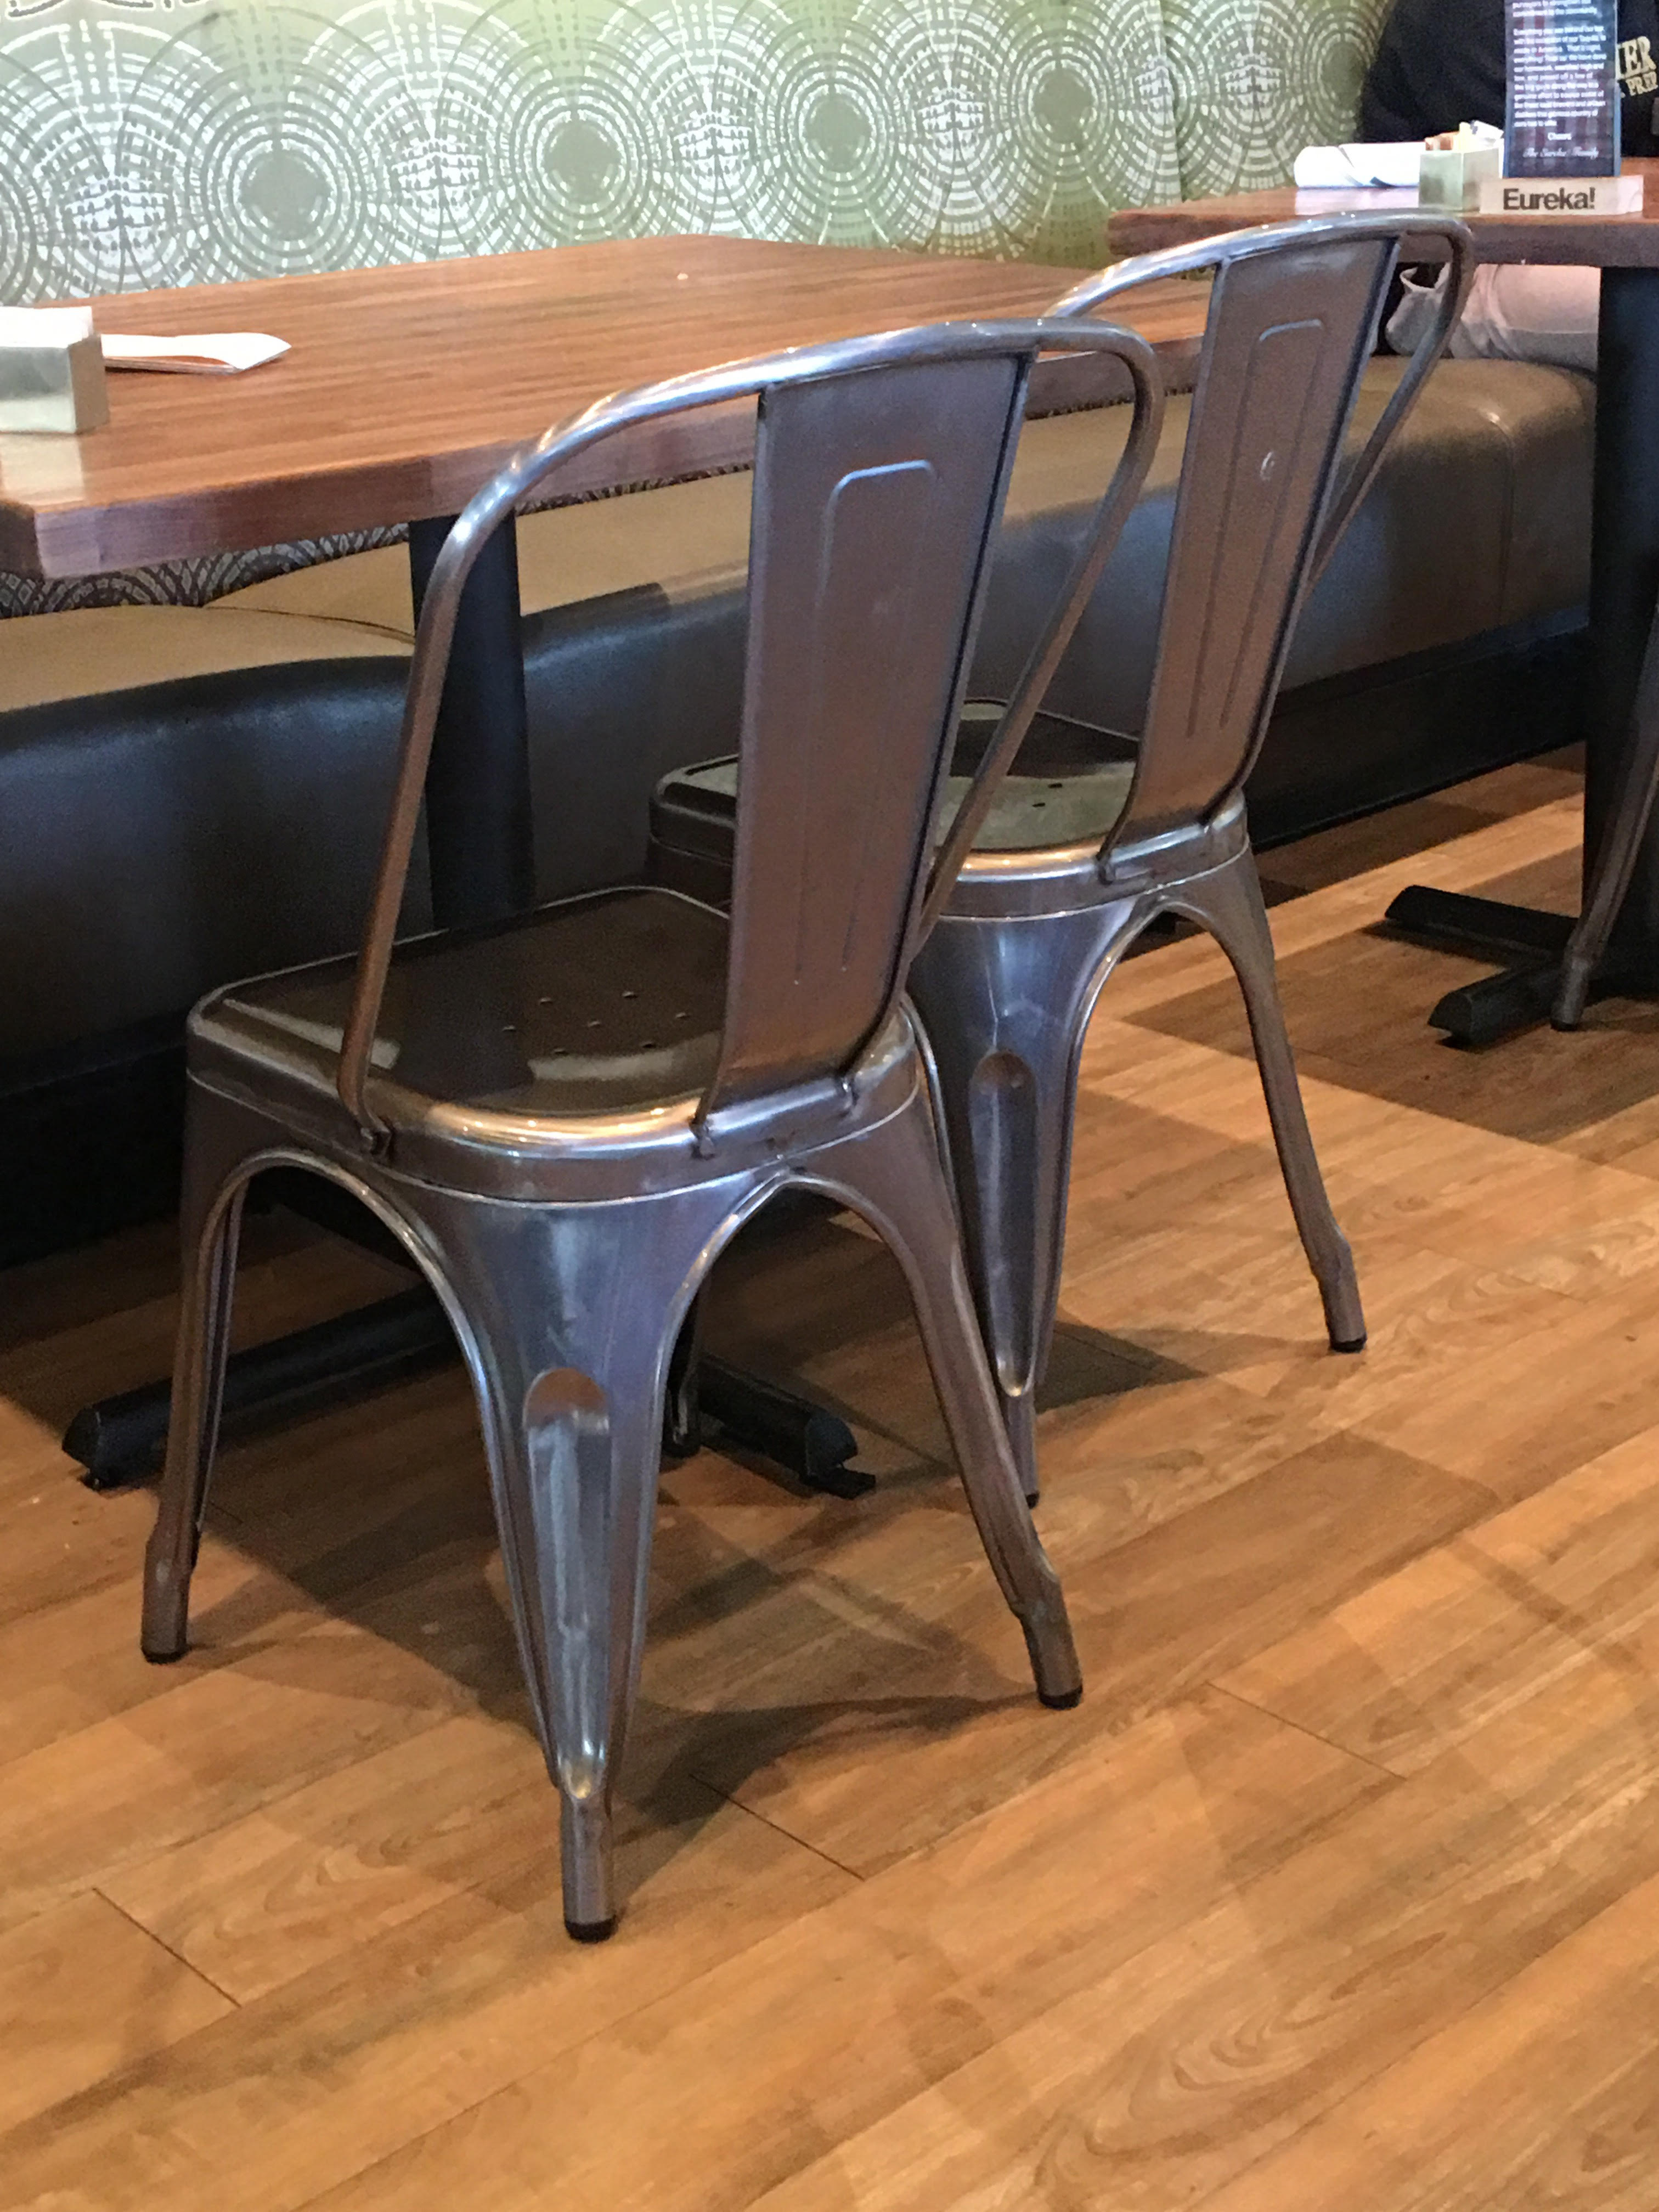 the chairs tolix reviews following sometimes sku numbers under manufacturer chair temple with is also replica direct listed milan seat timber